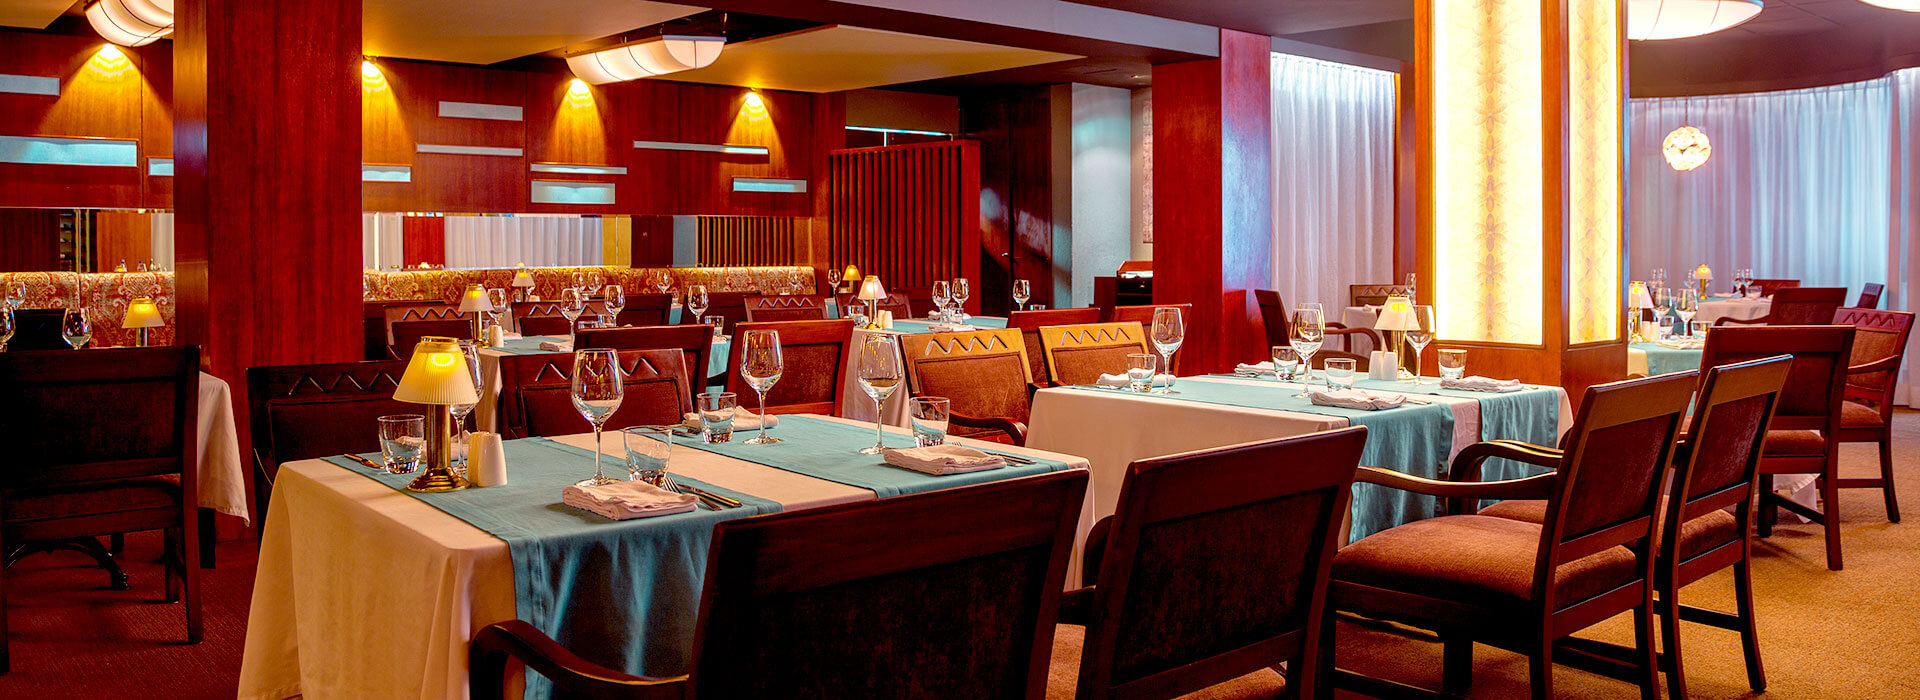 Cancun resort best restaurants